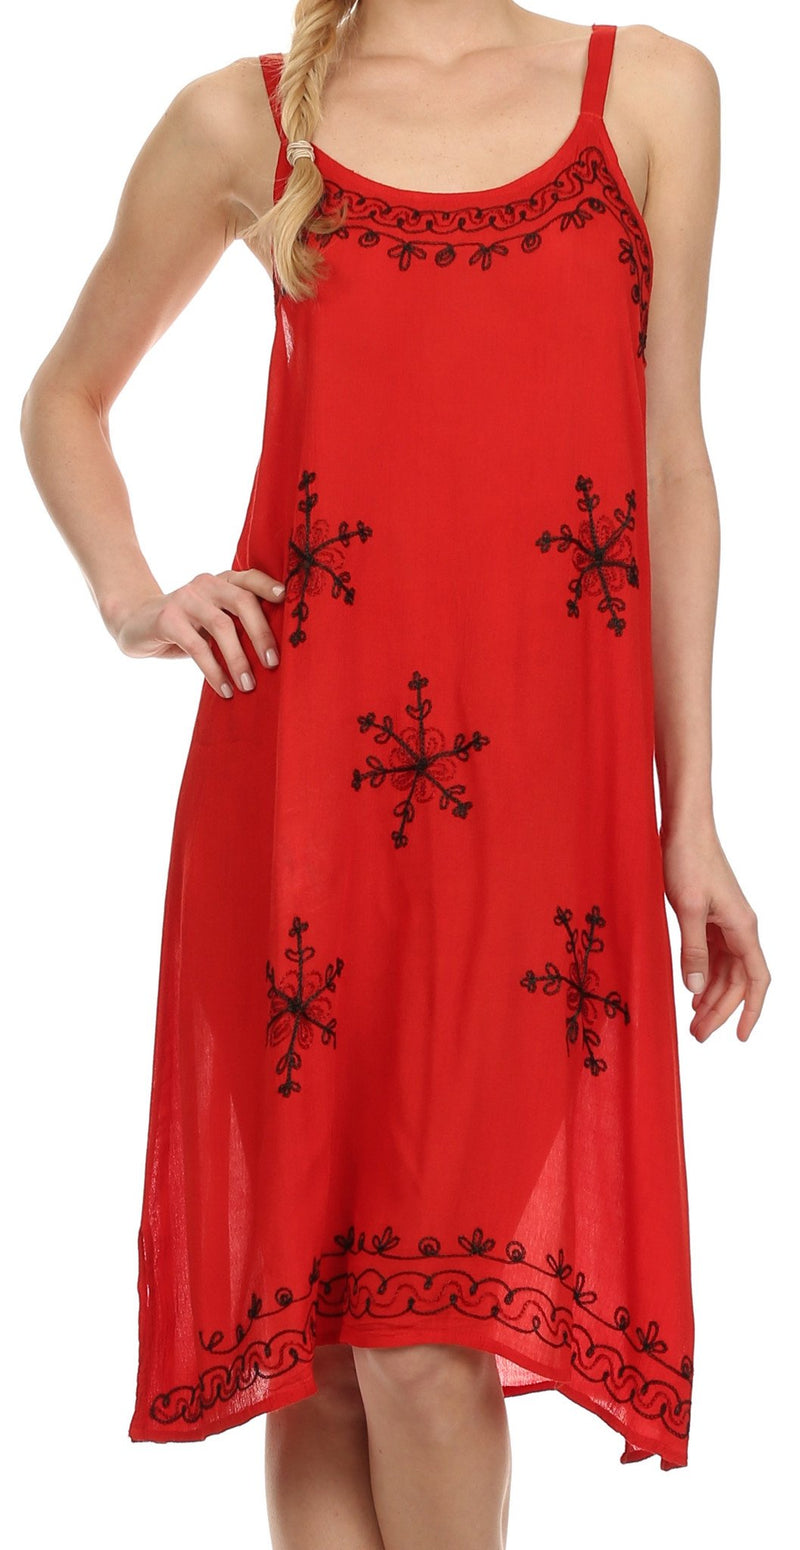 Sakkas Lucy Embroidered Hearts and Snowflakes Short Dress /Cover Up